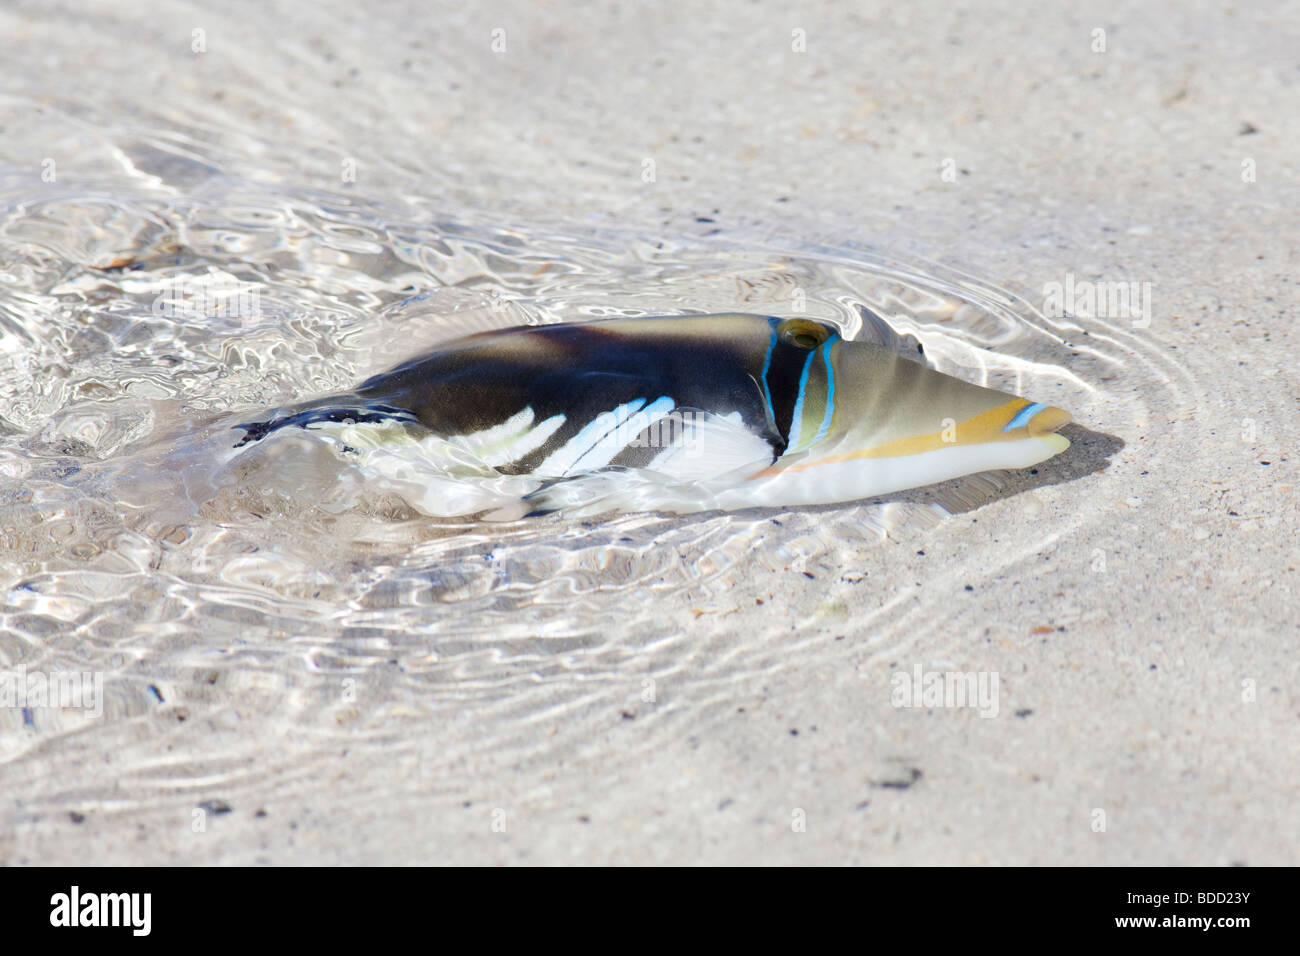 A fish swimming in shallow water on a beach on Rarotonga in The Cook Islands - Stock Image